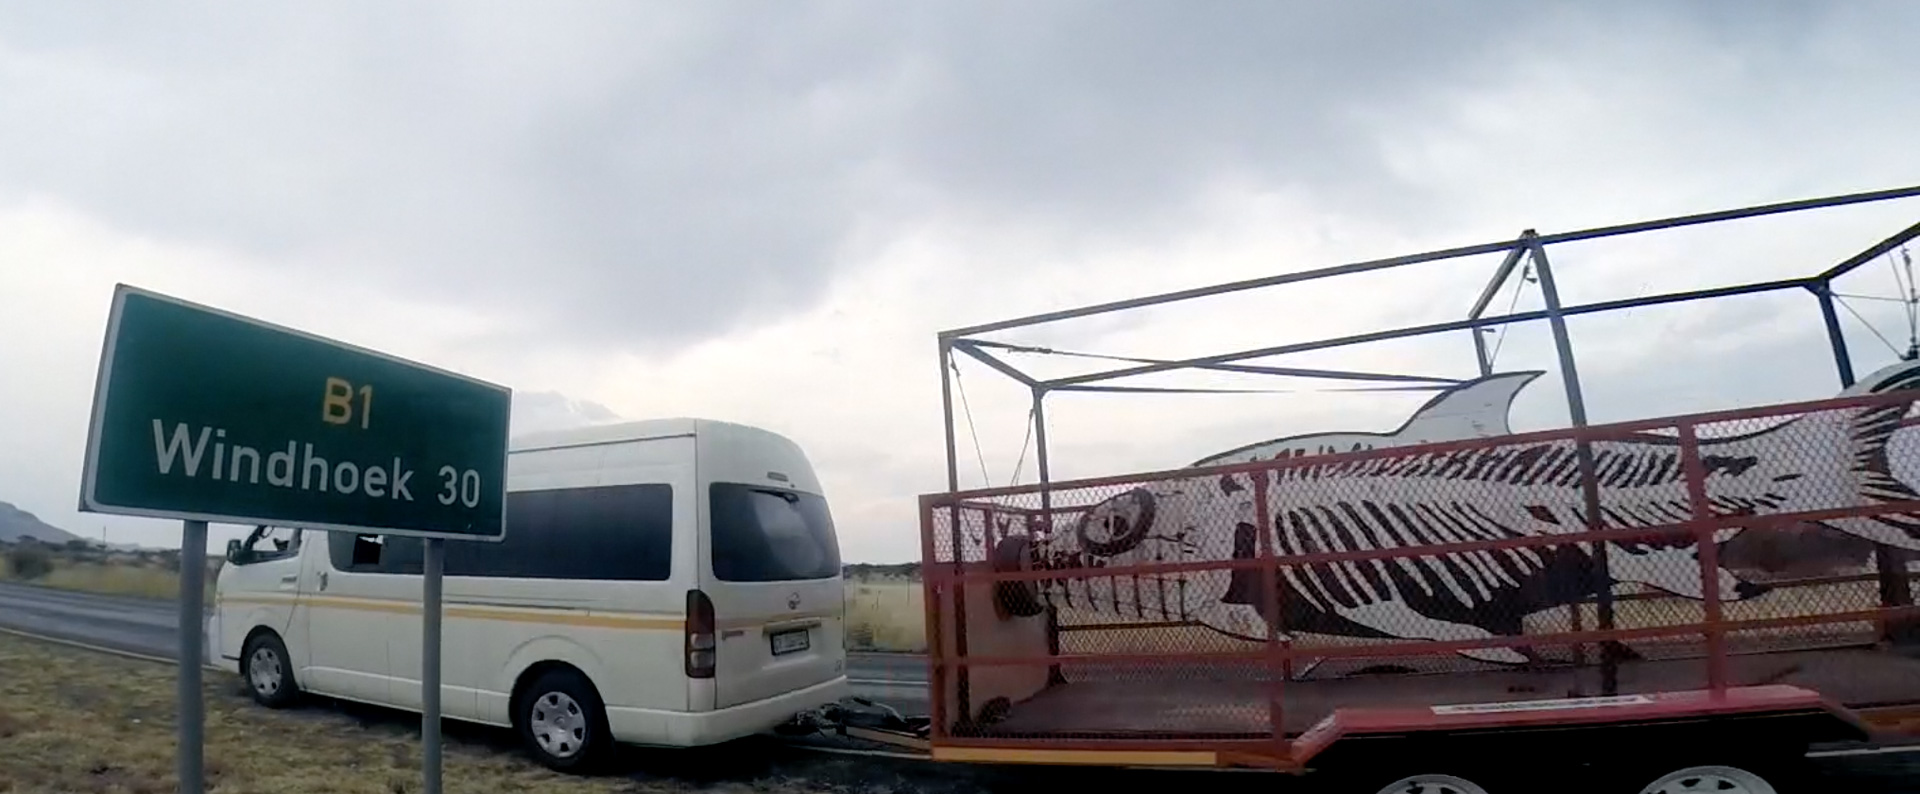 Images depict the fish on the final leg of the trip to Windhoek. A van tows the fish in the cage past a sign for Windhoek.